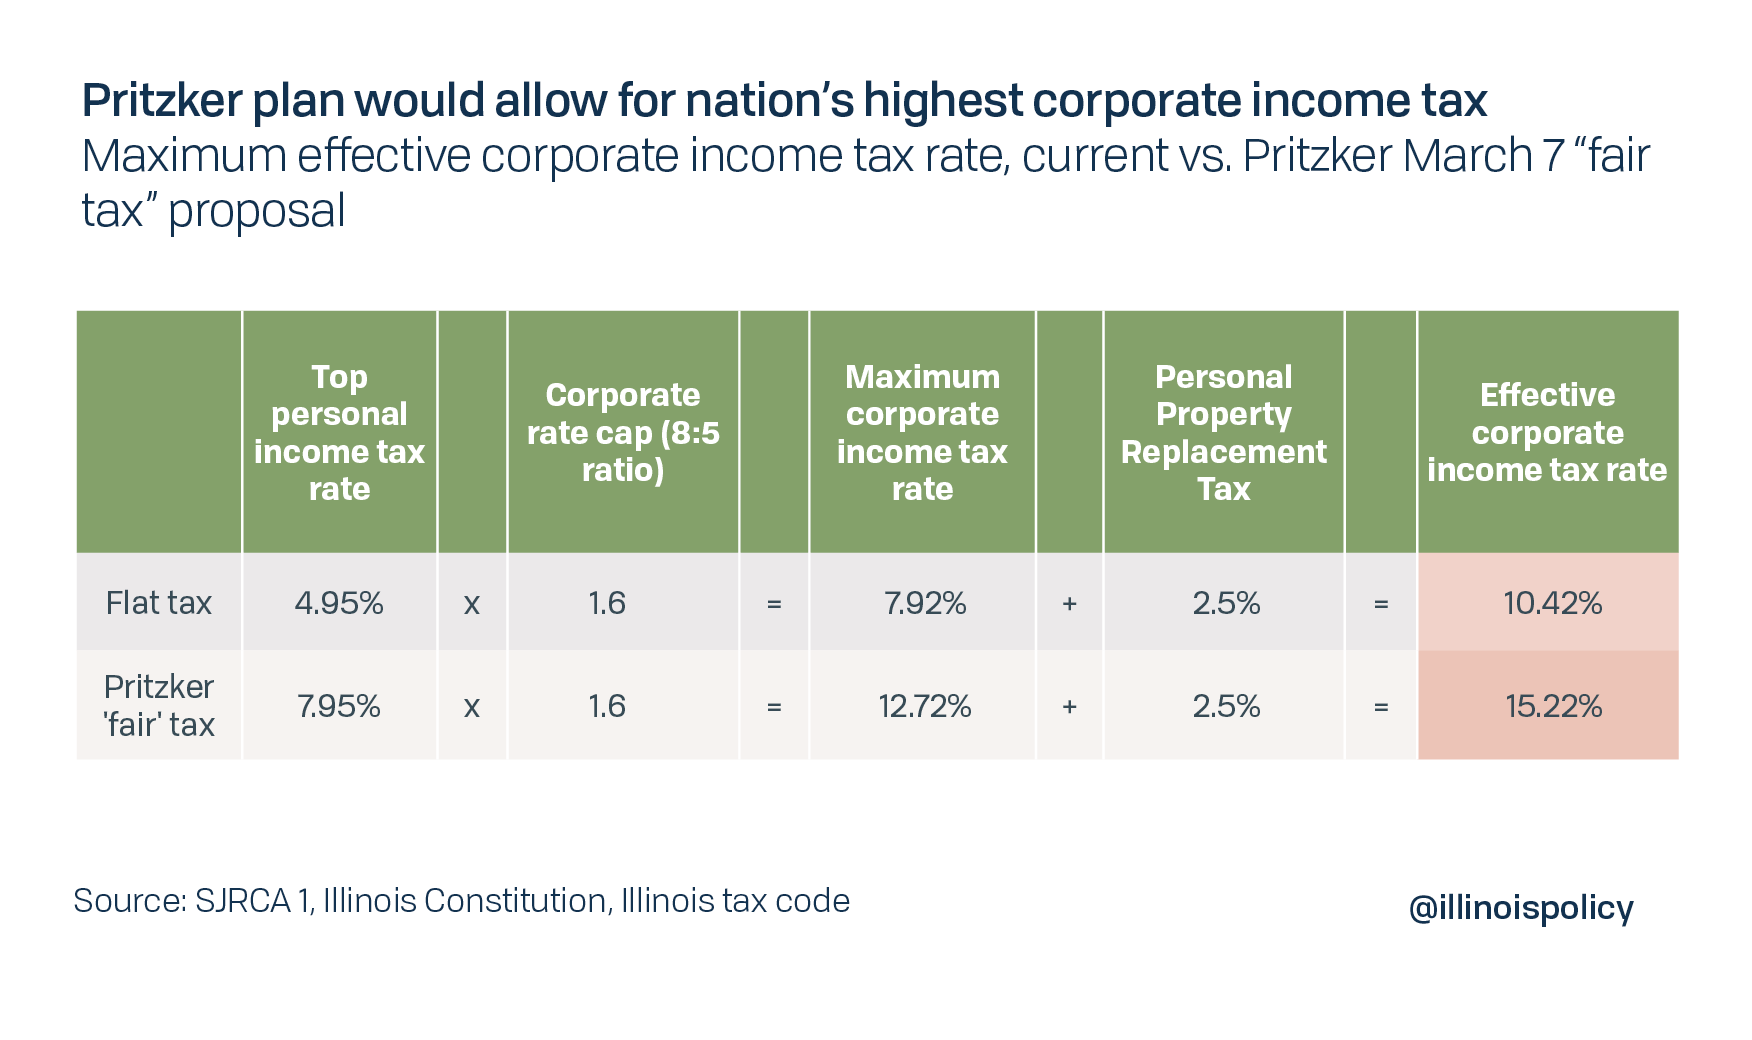 Pritzker plan would allow for nation's highest corporate income tax